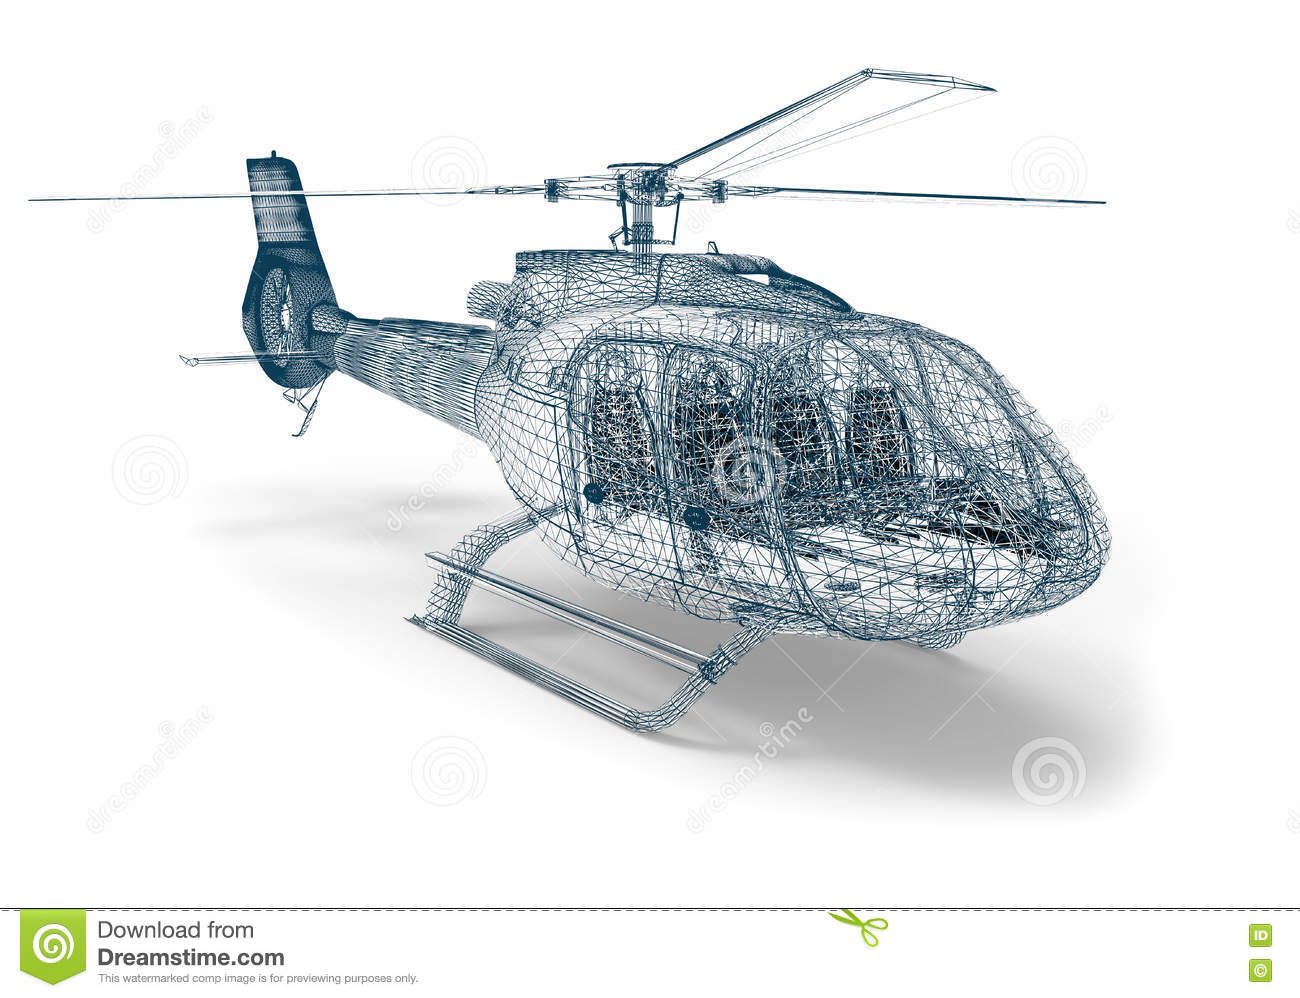 aircraft computer aided design stock illustration image